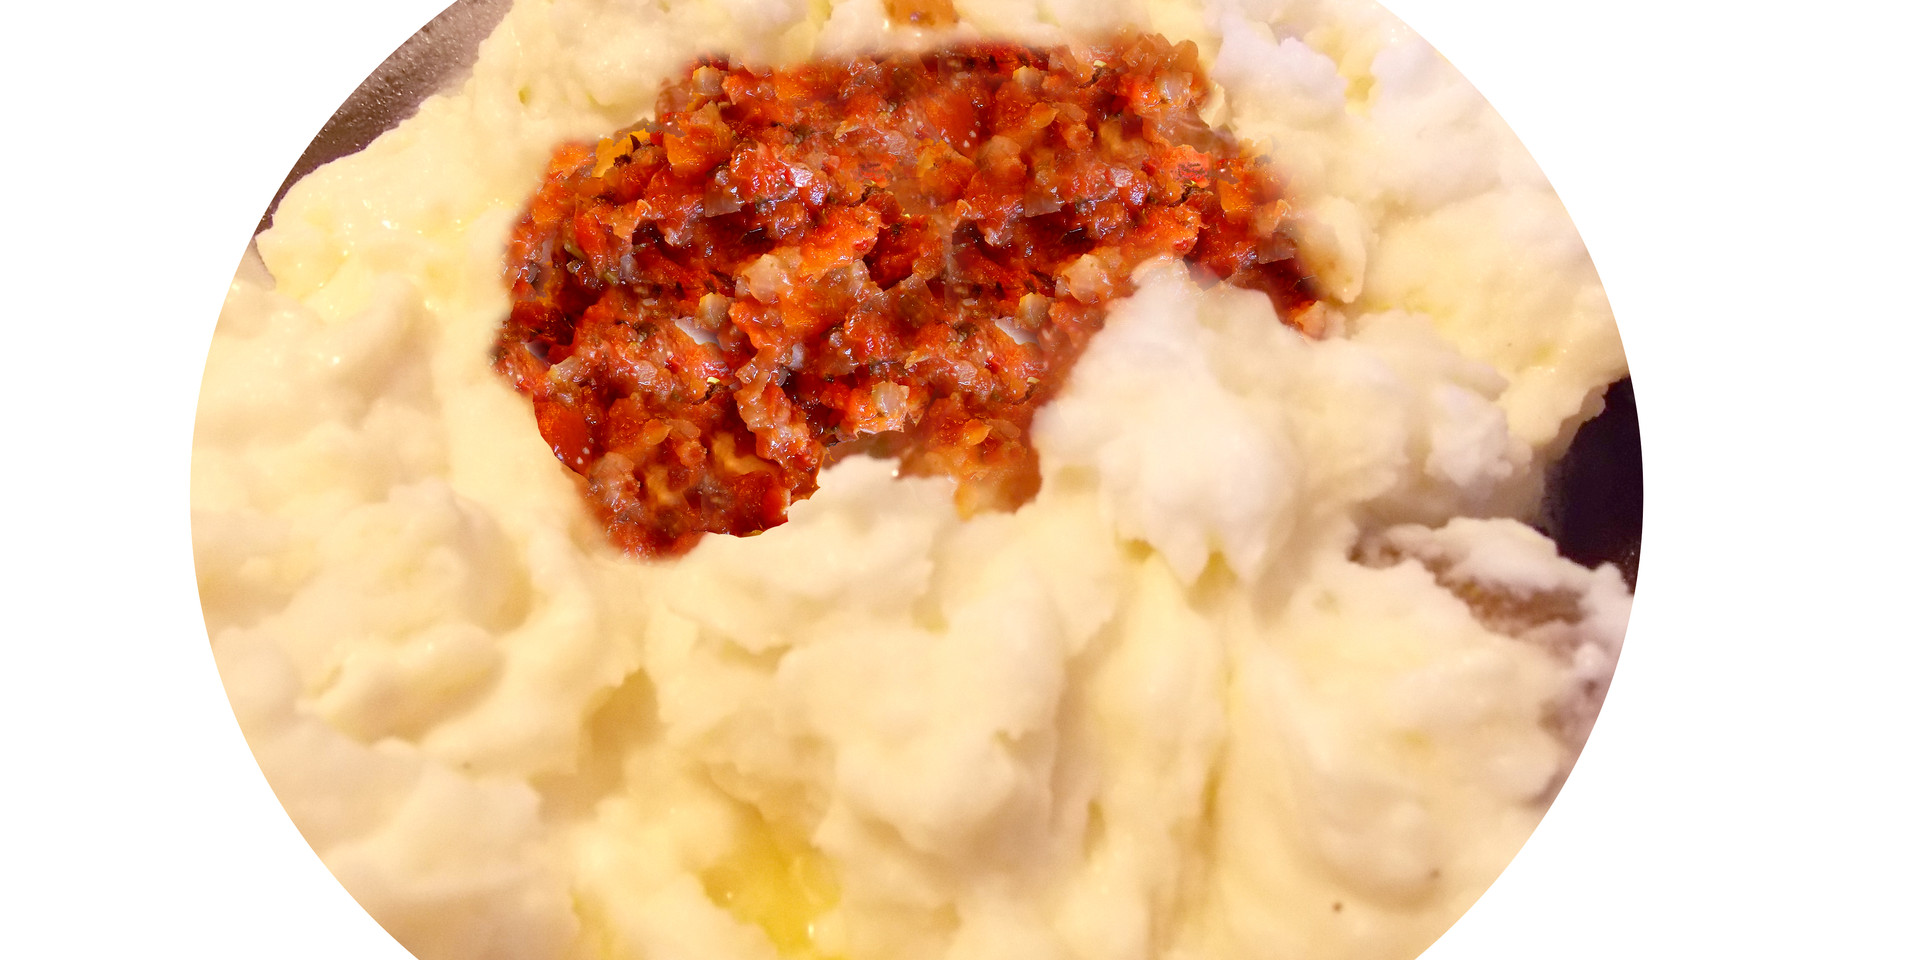 Take your mashed potatoes to the next level! Add butter, cheese, and your favourite Aji and your taste buds will explode